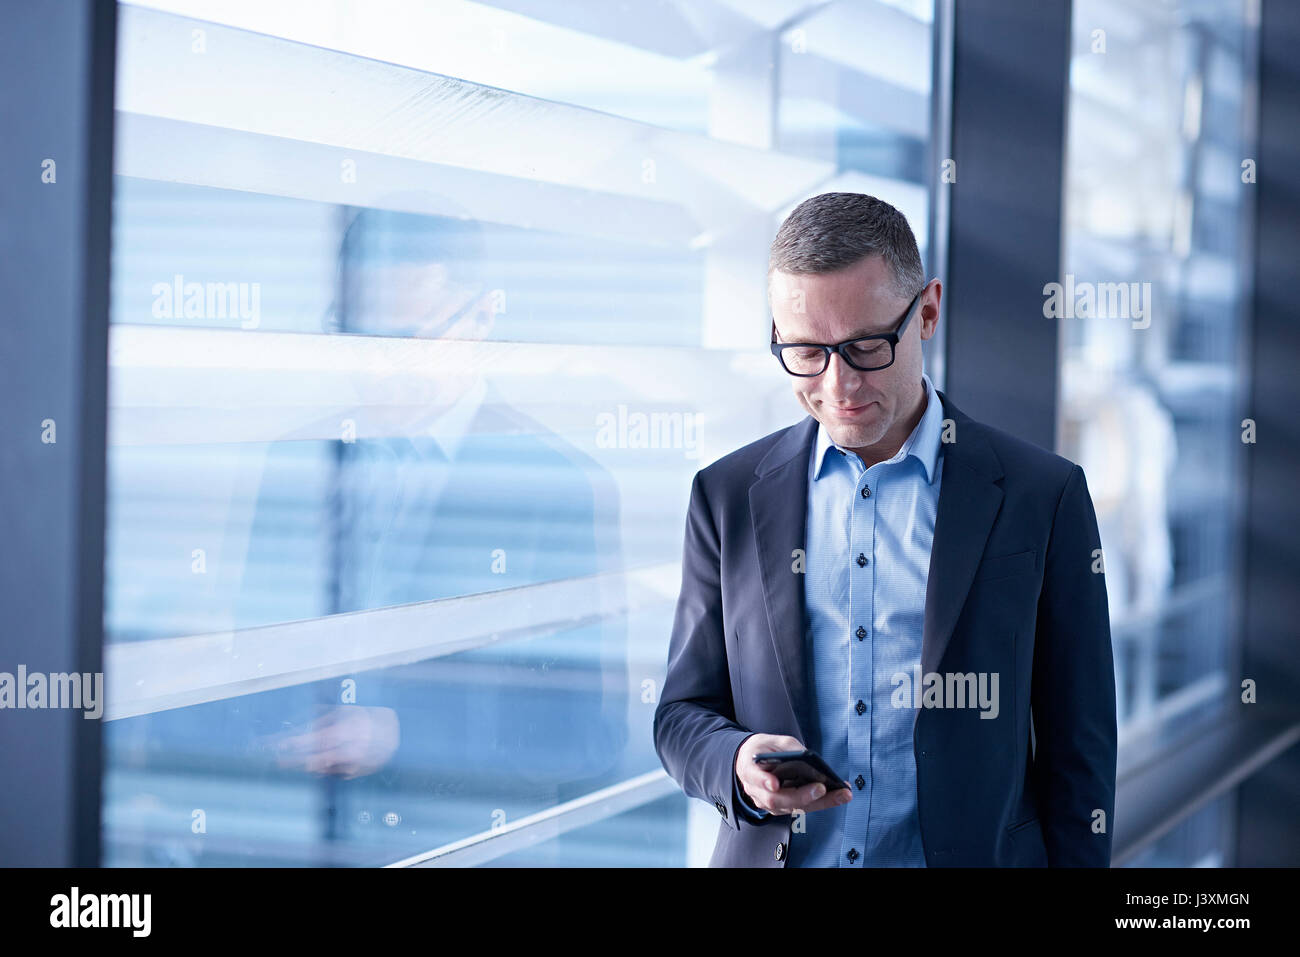 Businessman looking at smartphone in office - Stock Image